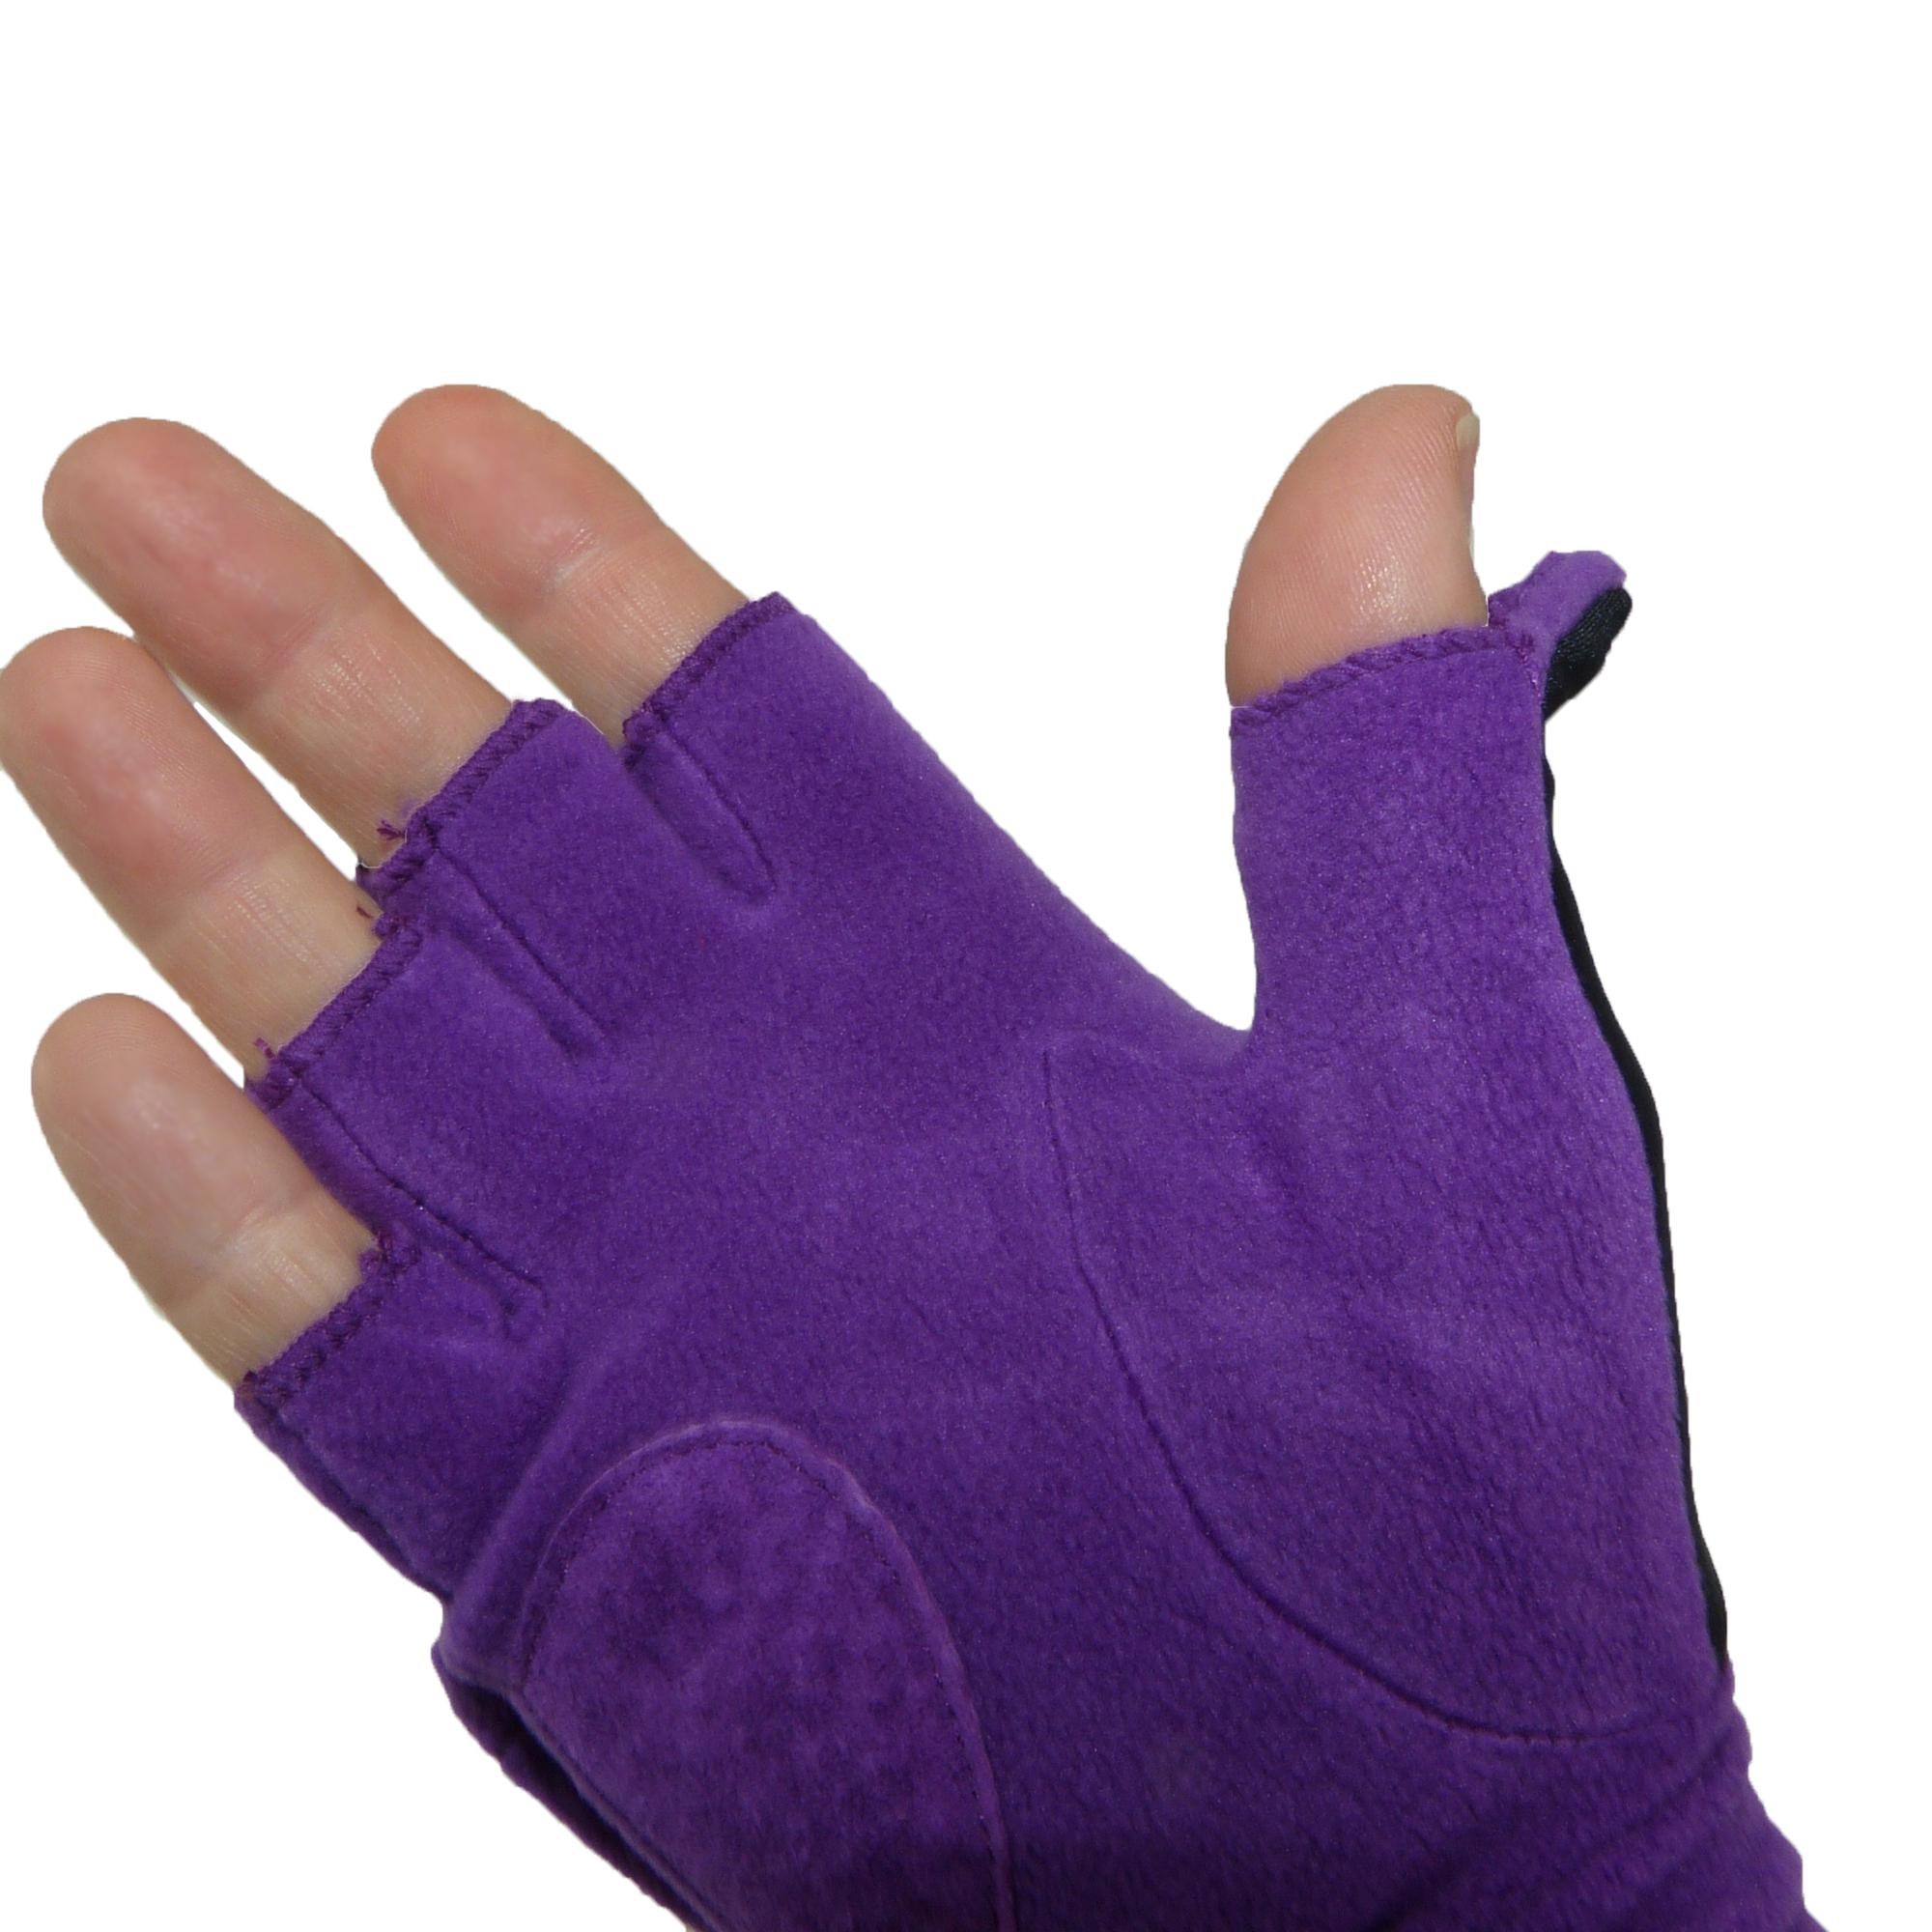 Isotoner womens leather gloves with fleece lining - Picture 27 Of 36 Picture 28 Of 36